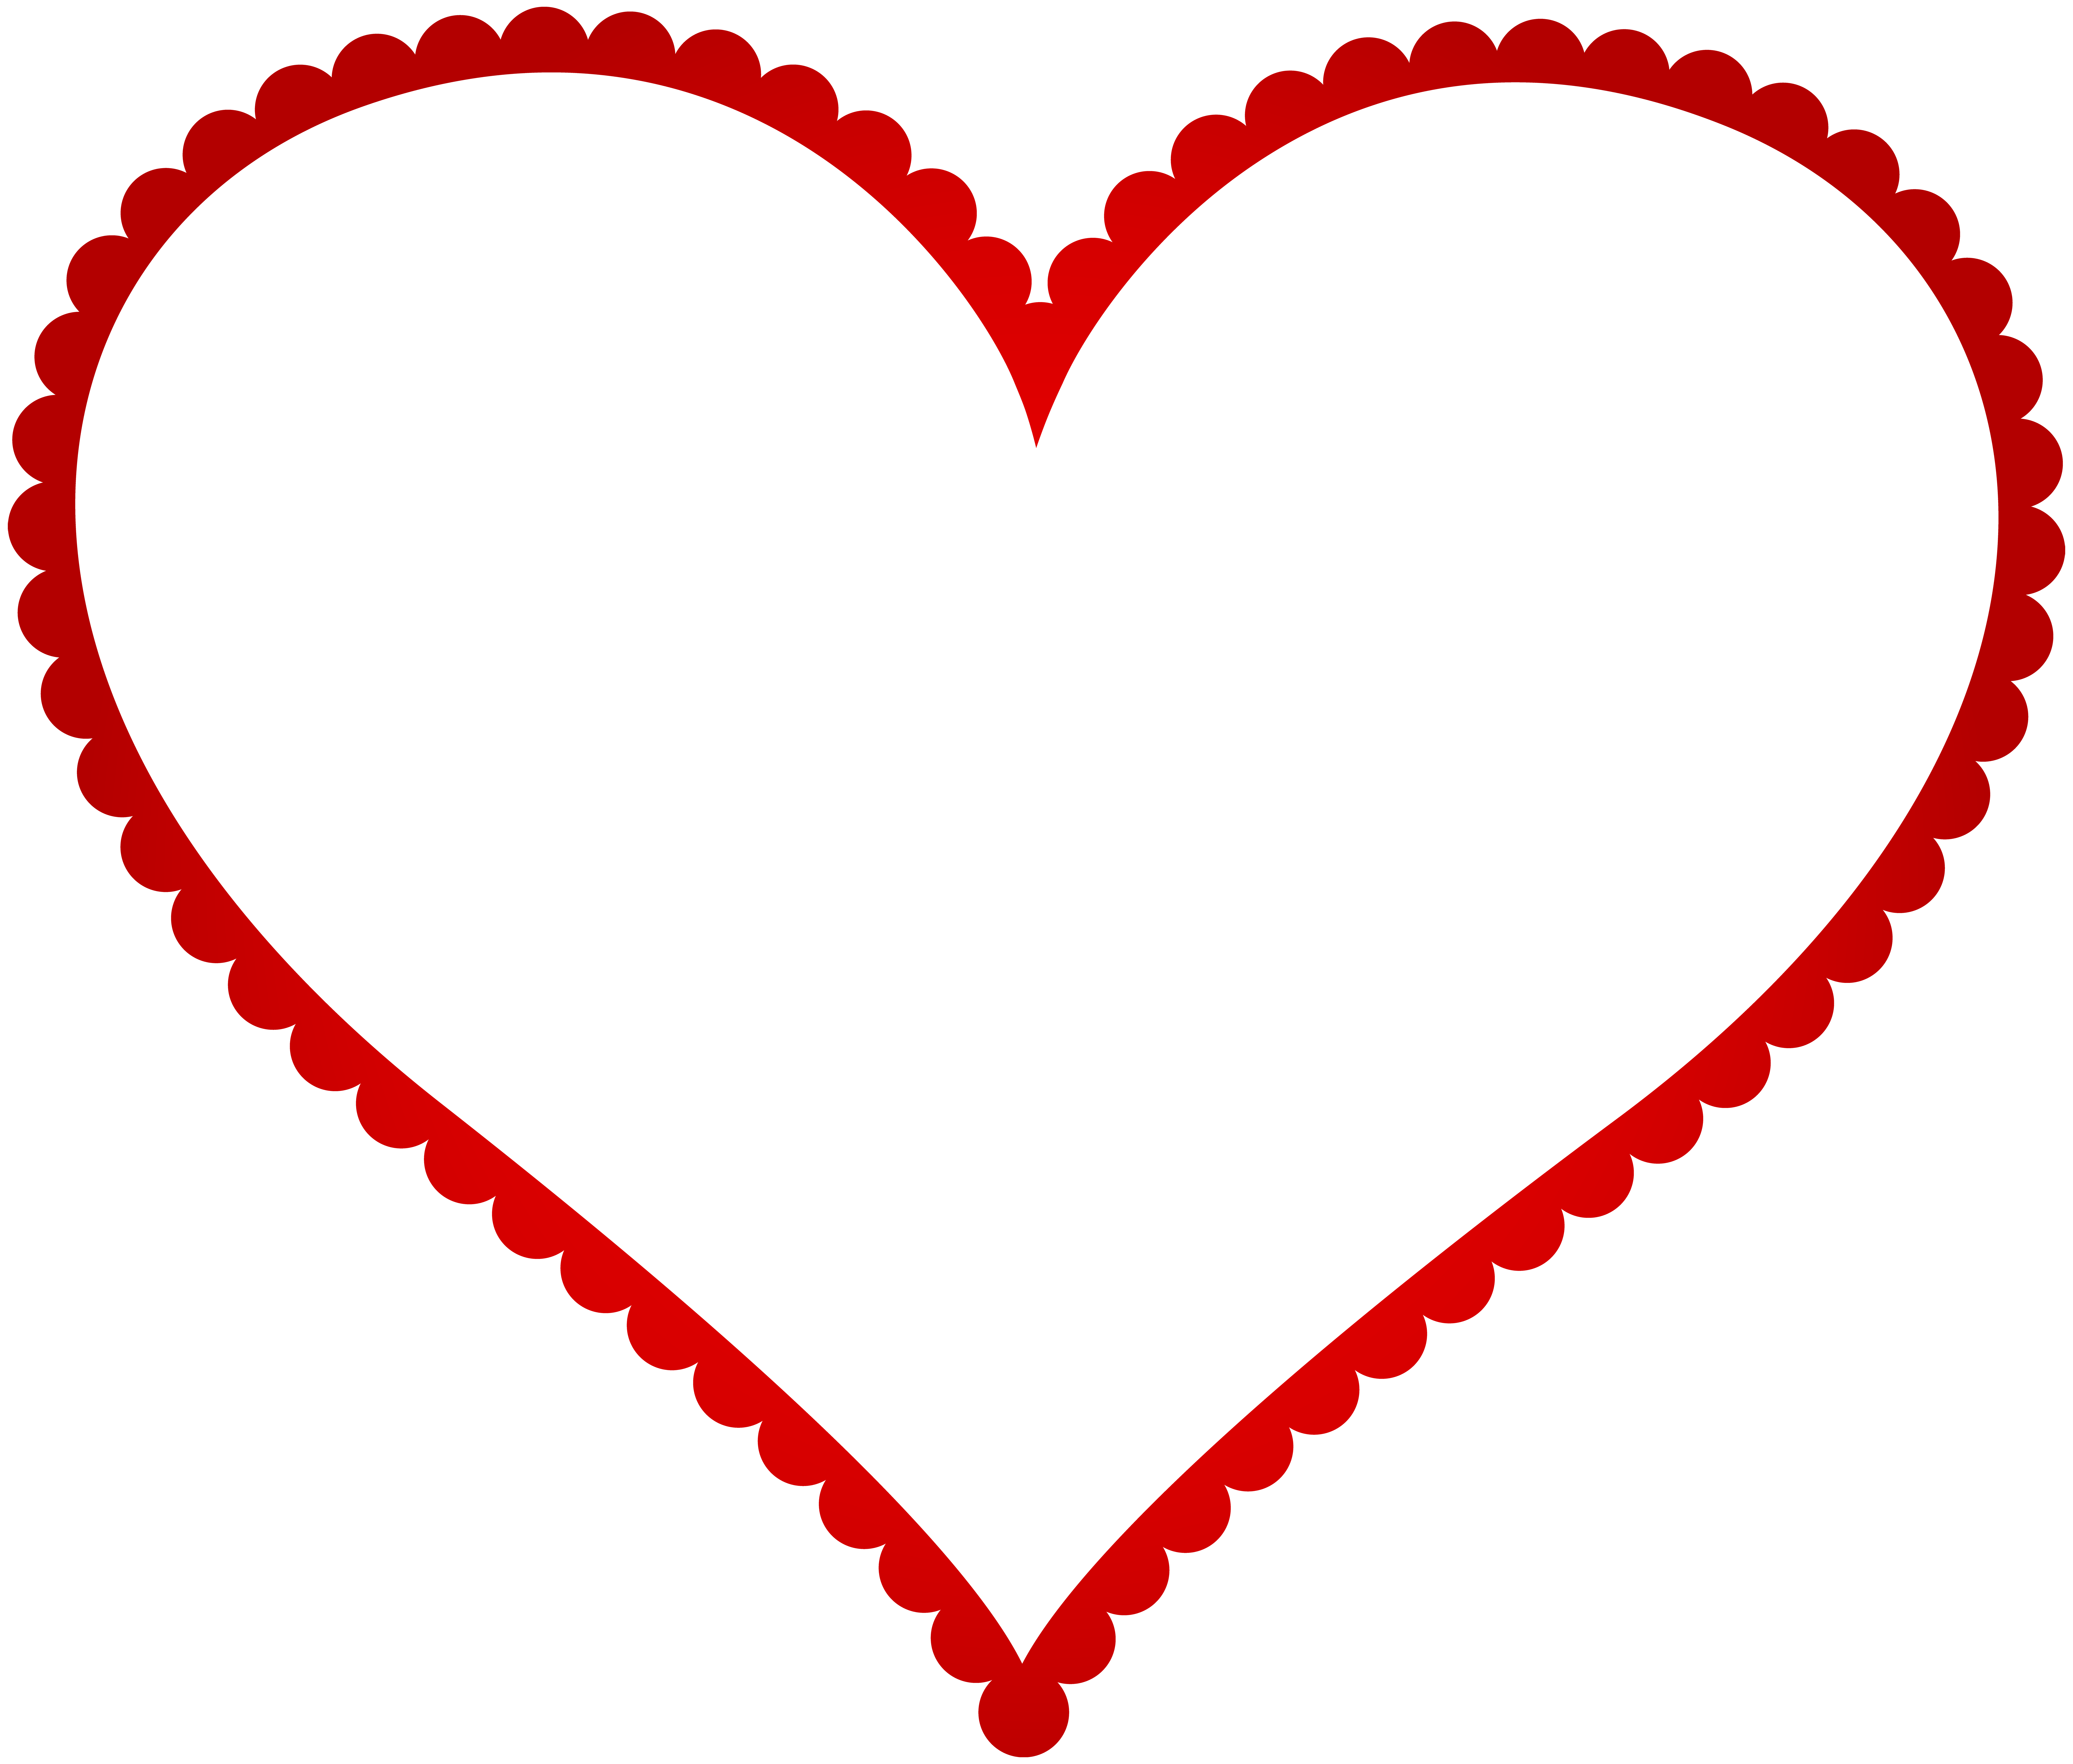 Red Heart Border Frame Transparent PNG Clip Art.